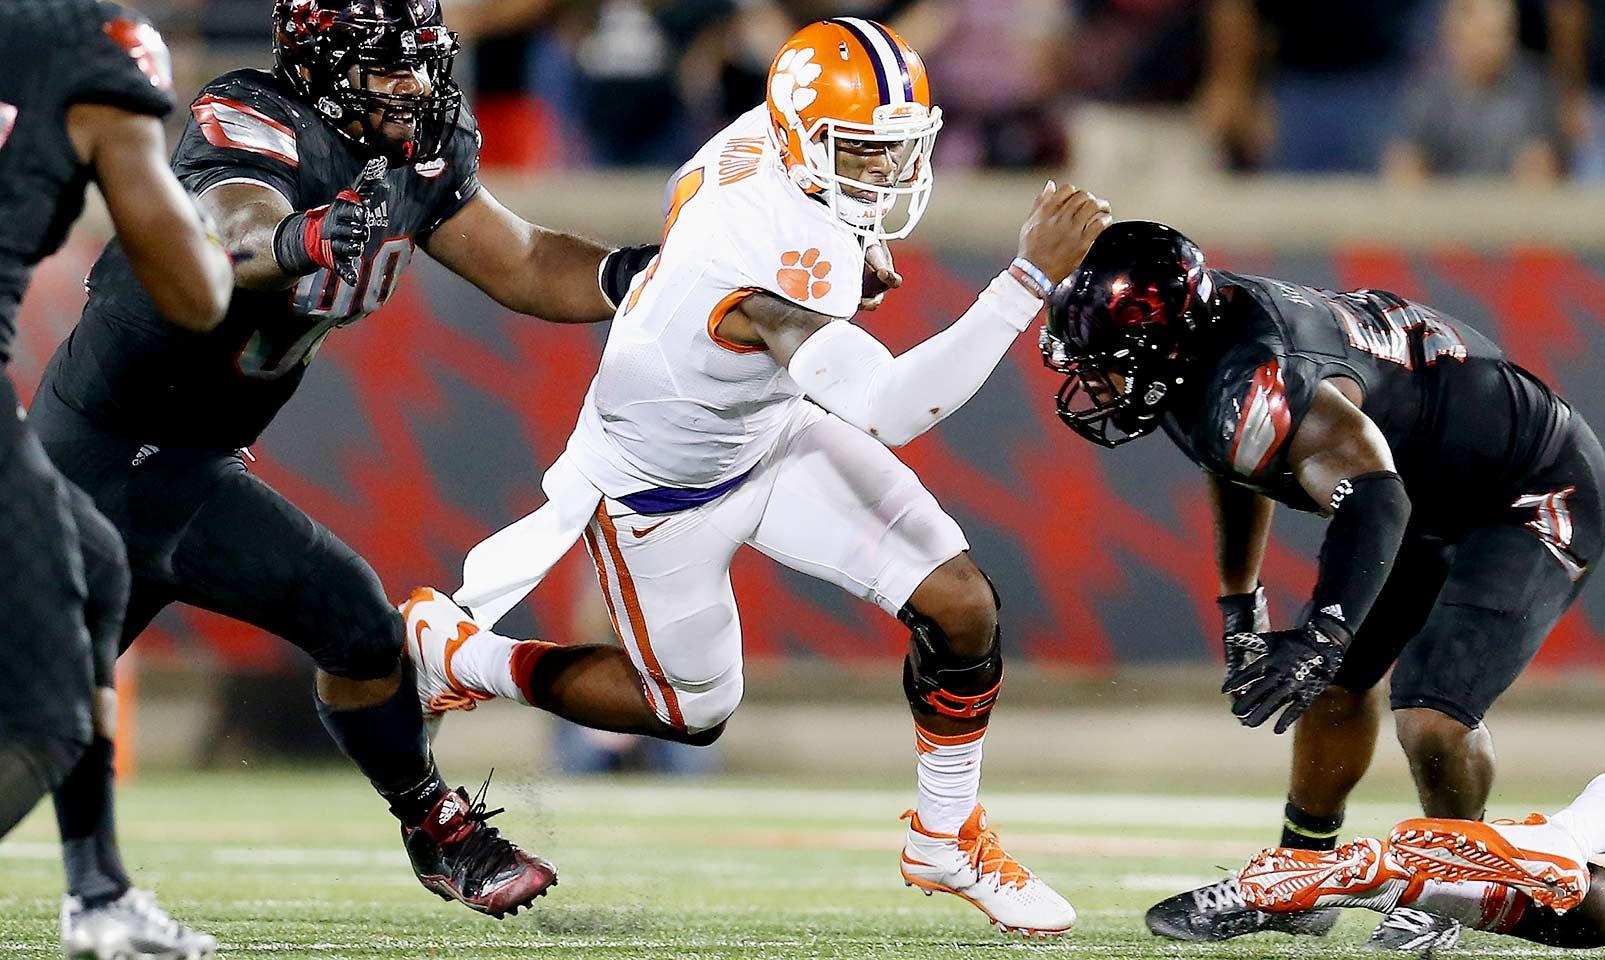 Clemson 20, Louisville 17: The Tigers eked out a win in the ACC opener when Cardinals quarterback Kyle Bolin's last-second heave was intercepted.